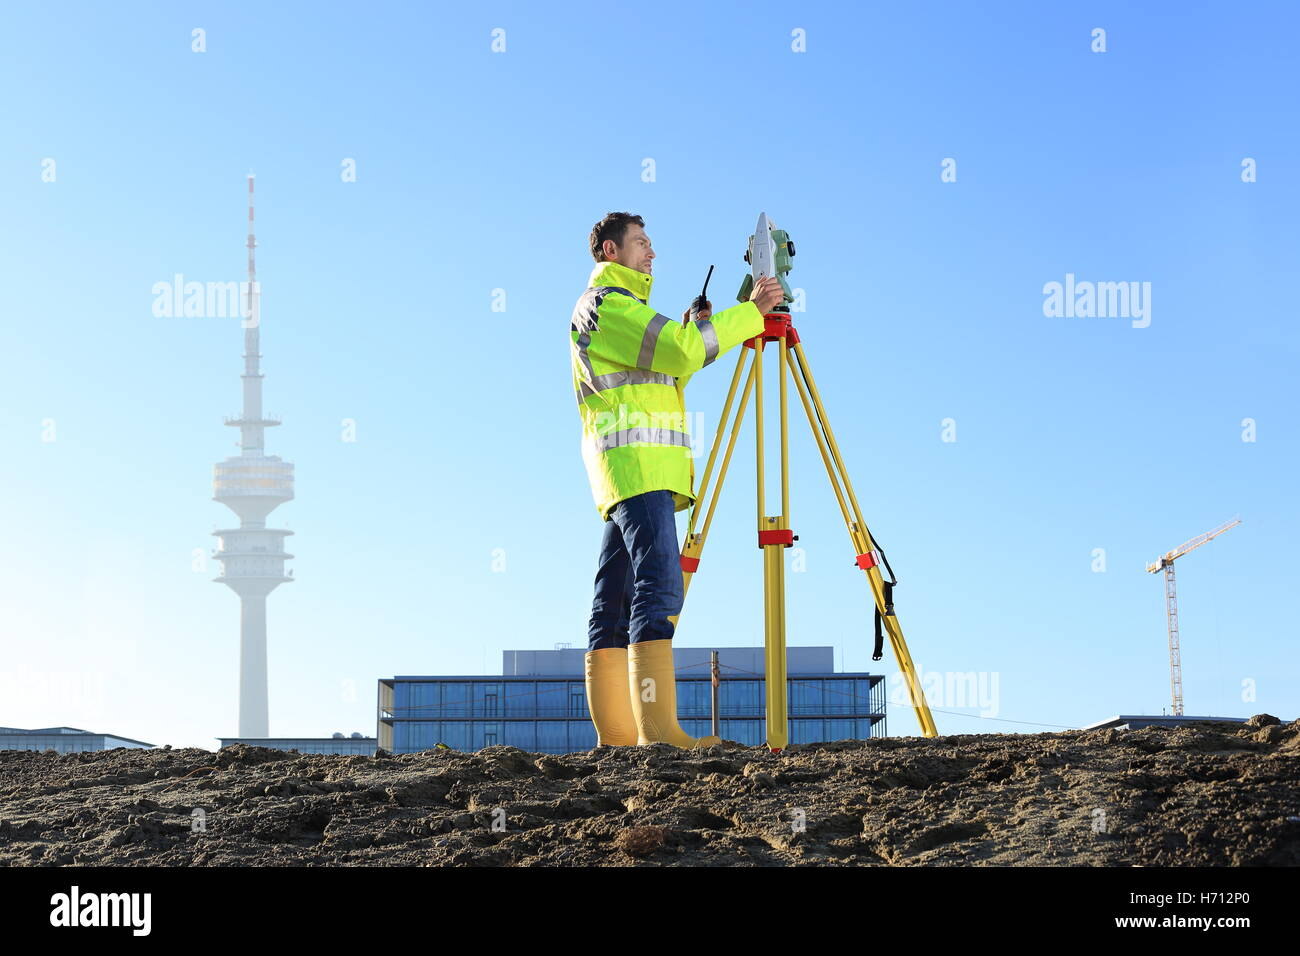 A Surveyor in Munich on hill - Stock Image